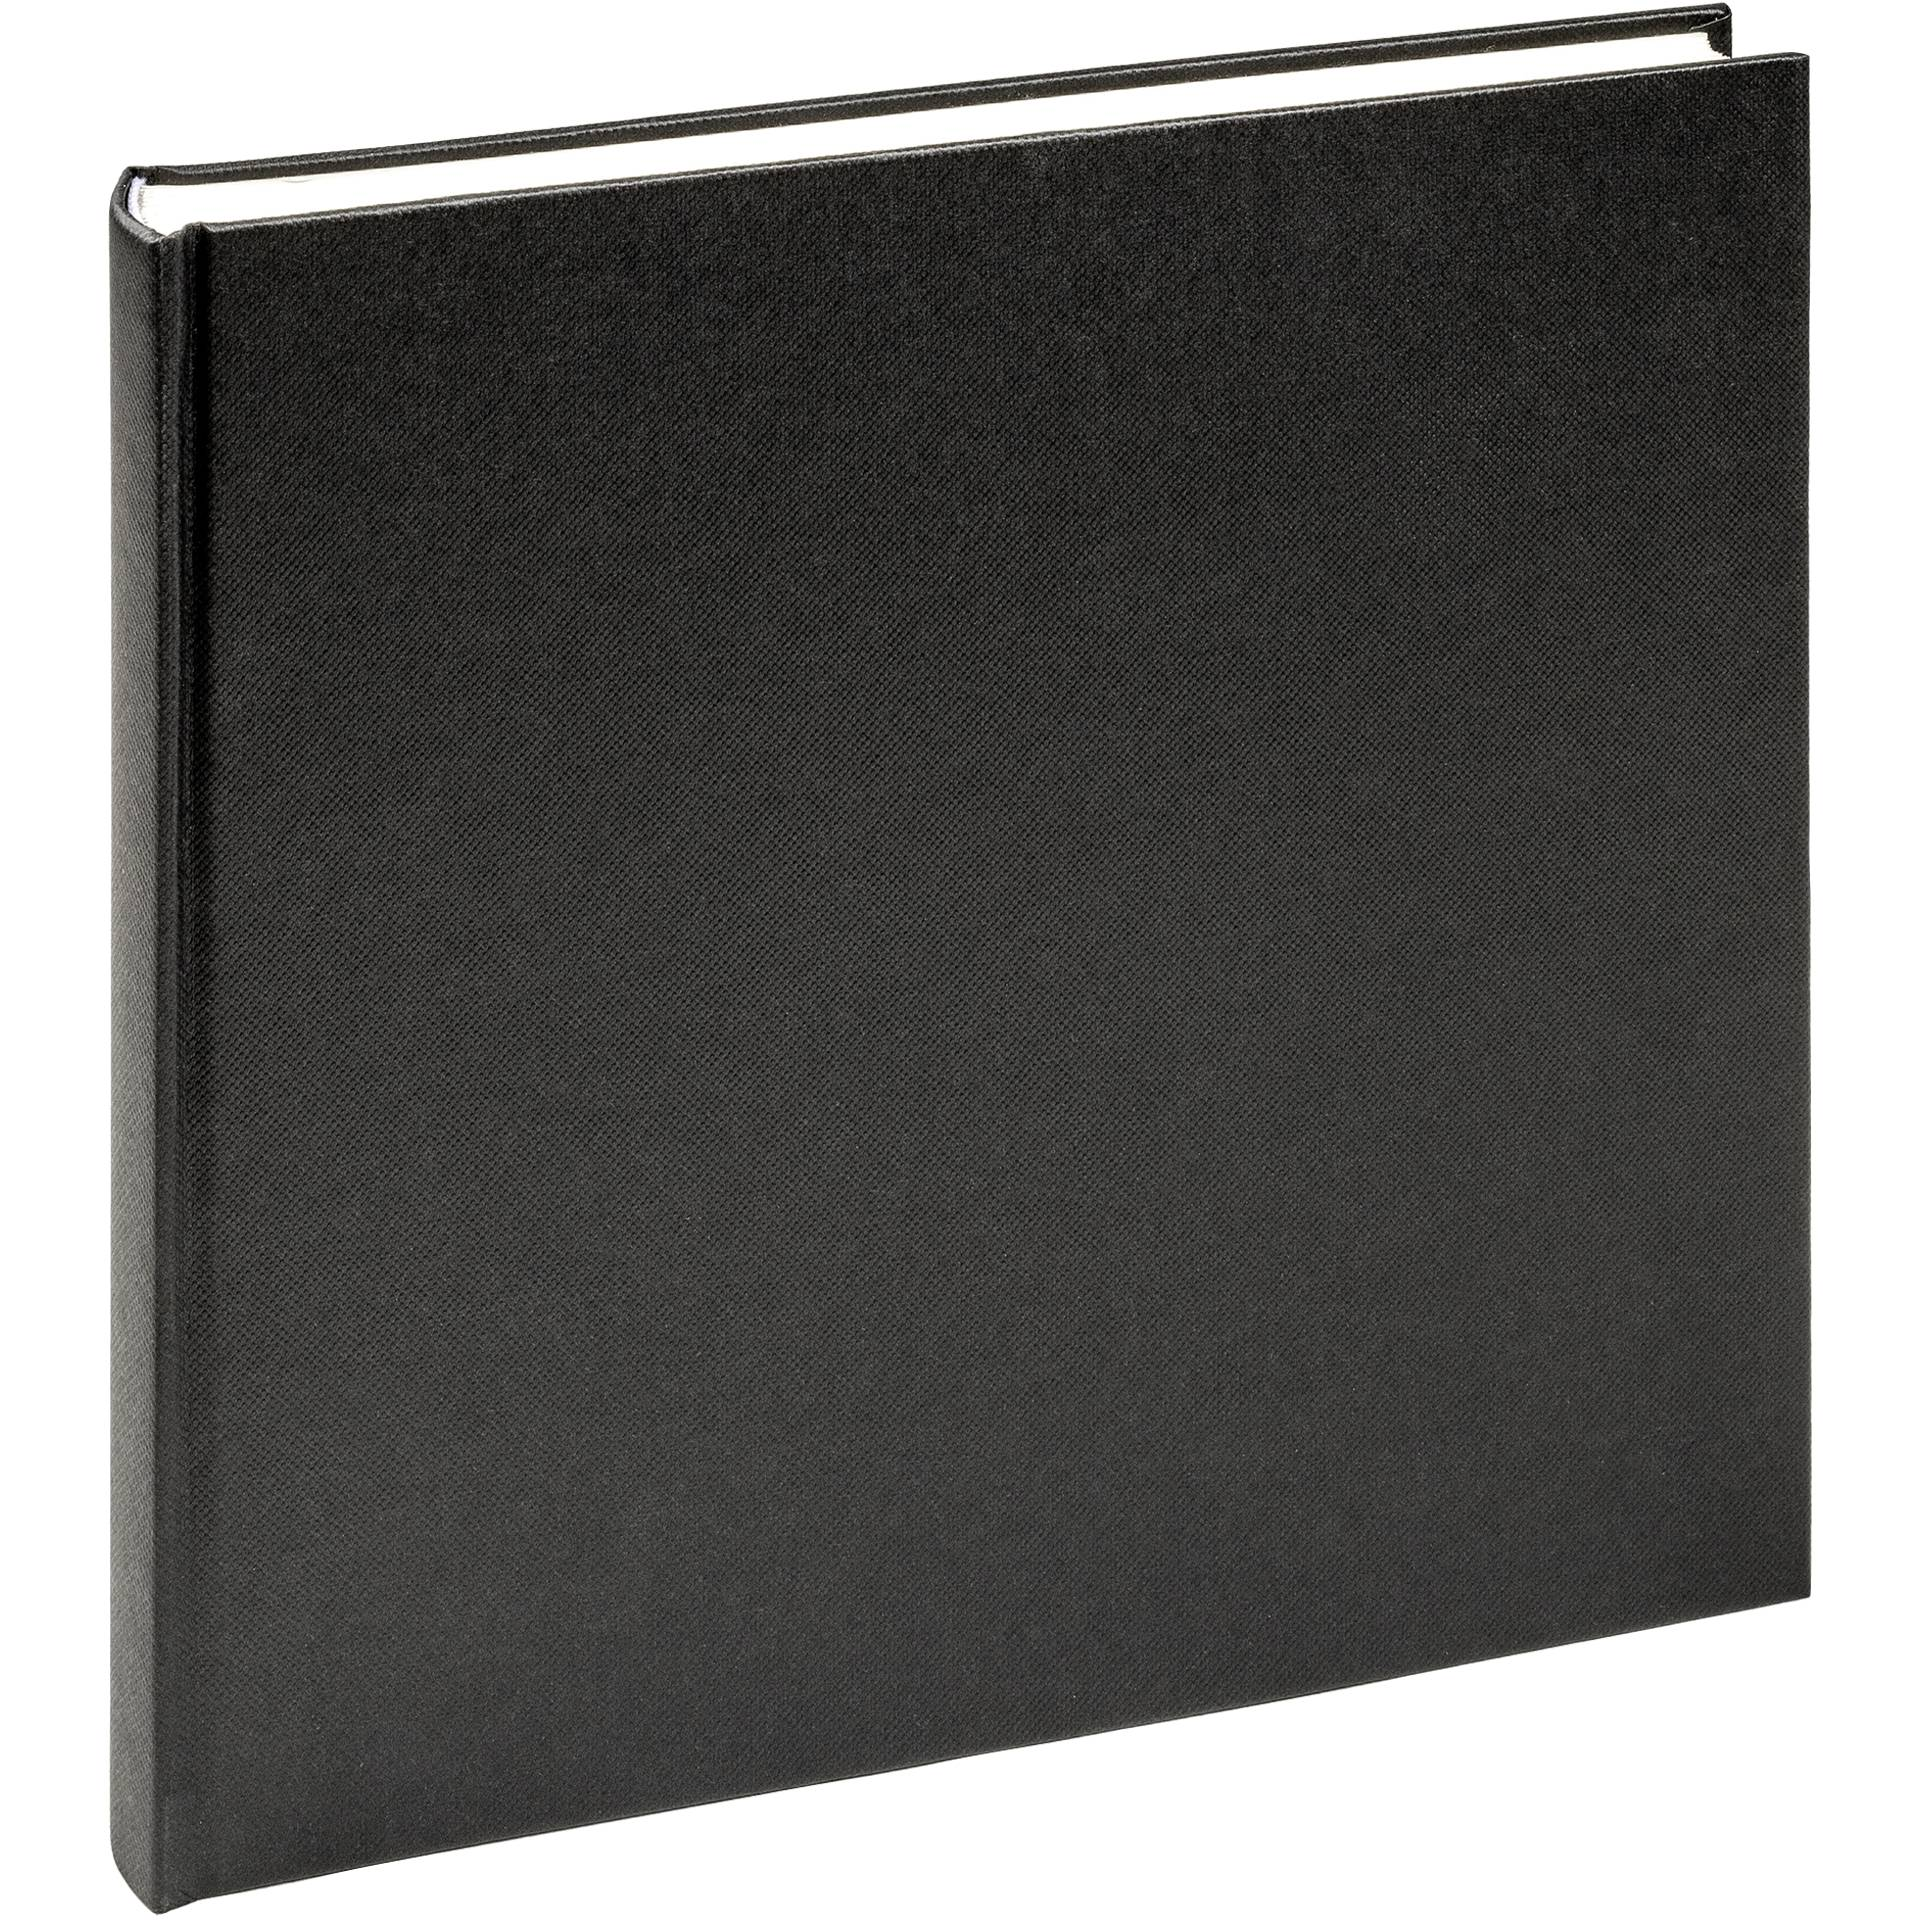 Walther Beyond Black 26x25 - 40 white pages